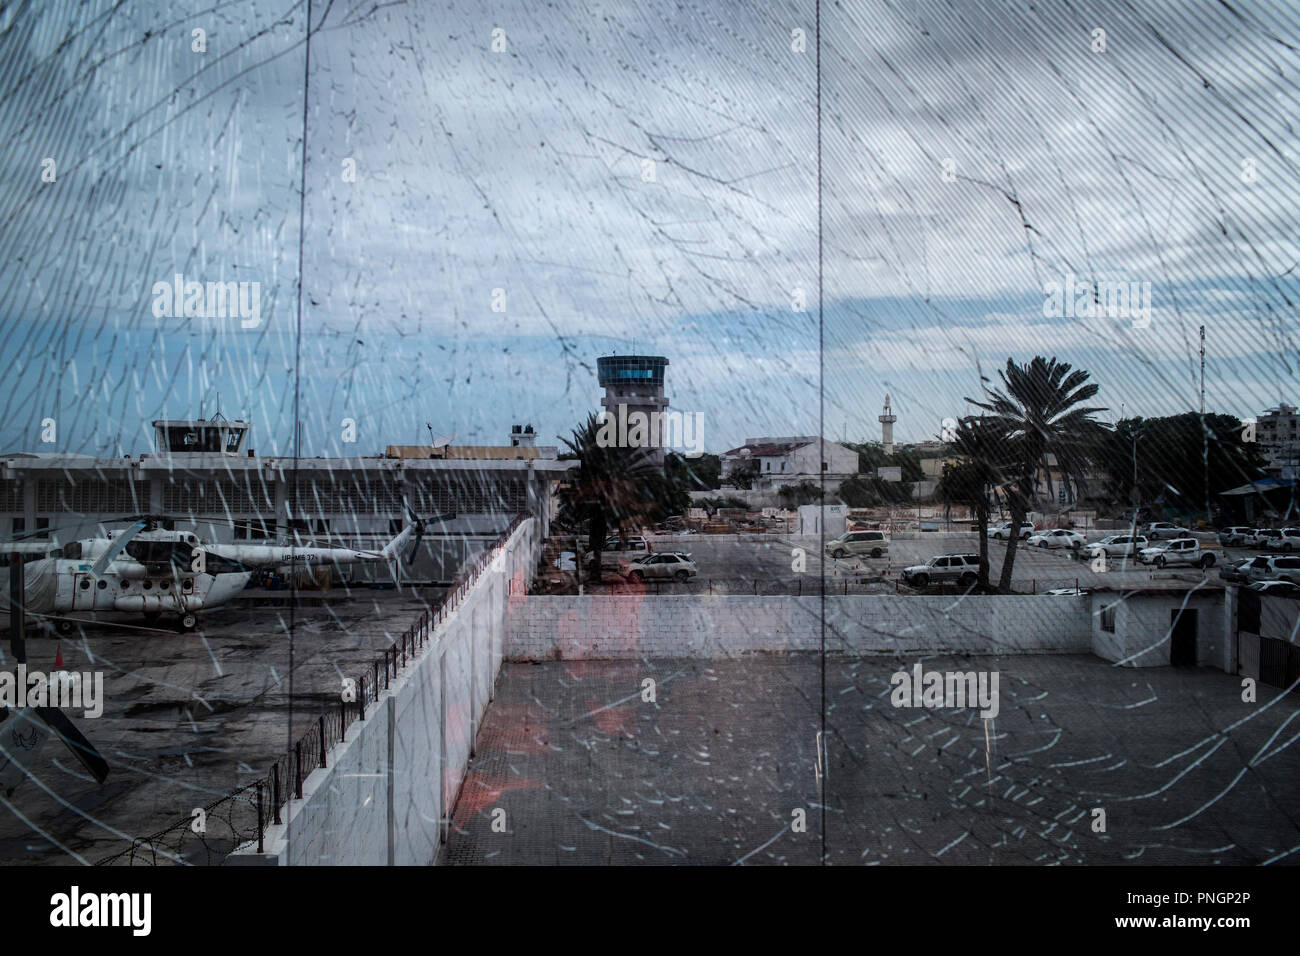 View of damaged glass due to a suicide attack shows a part of the compound of the Aden Abdulle airport in Mogadishu, Somalia, July 9, 2016. - Stock Image